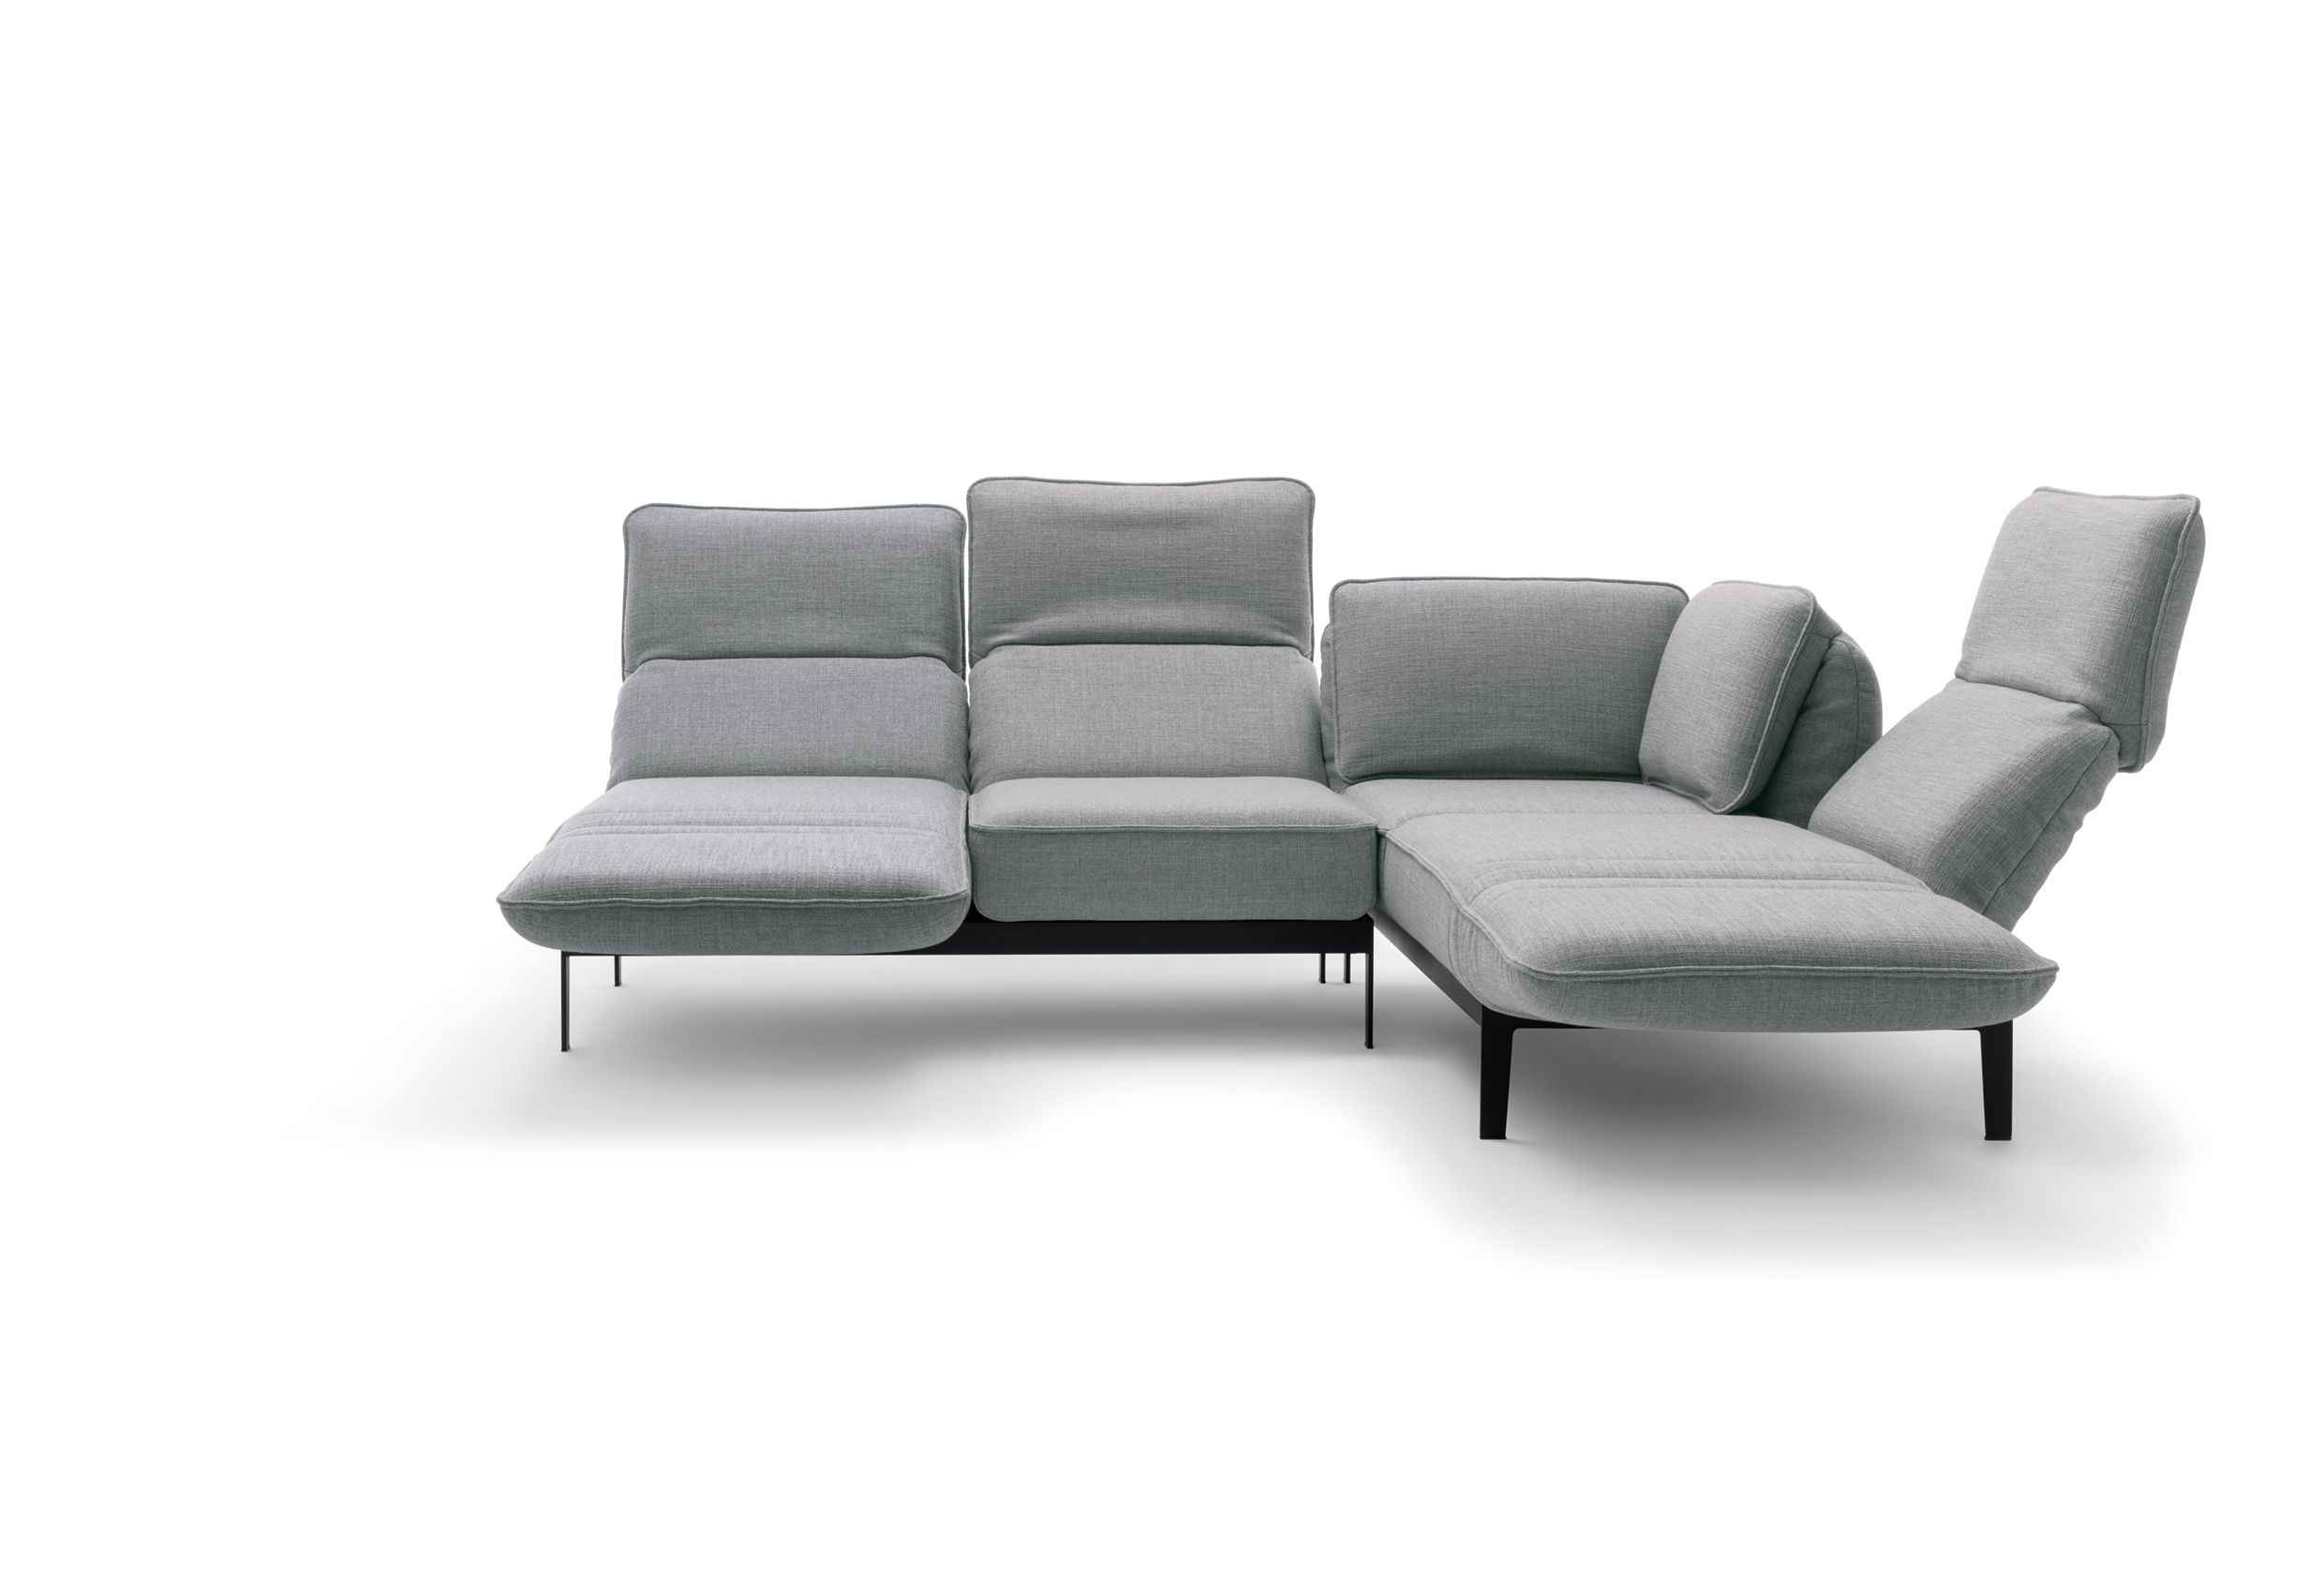 Rolf Benz AGIO sofa with mechanism Available at Studio Anise